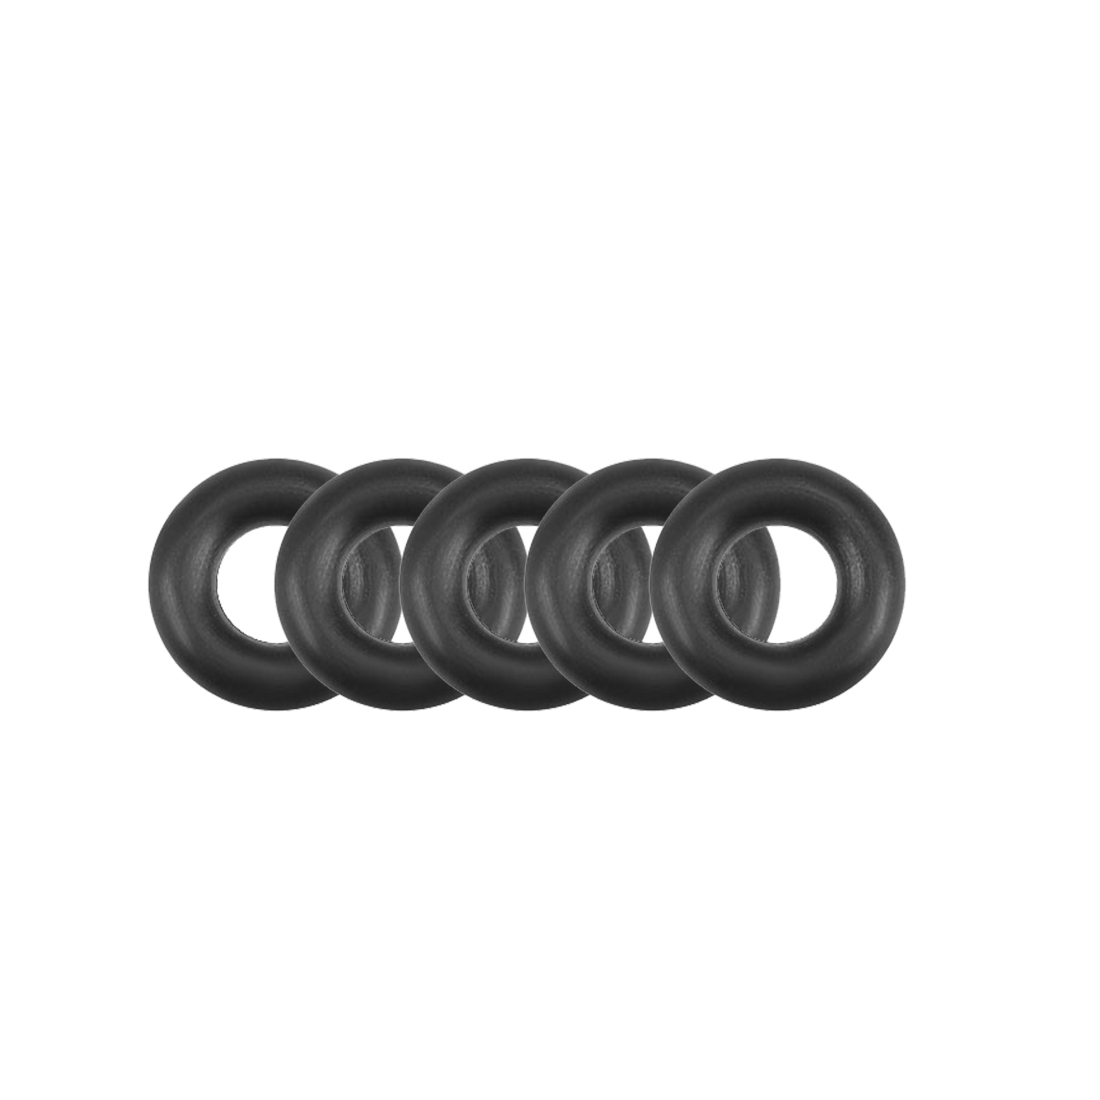 O-Rings Nitrile Rubber 2.8mm x 6.4mm x 1.8mm Round Seal Gasket 5 Pcs